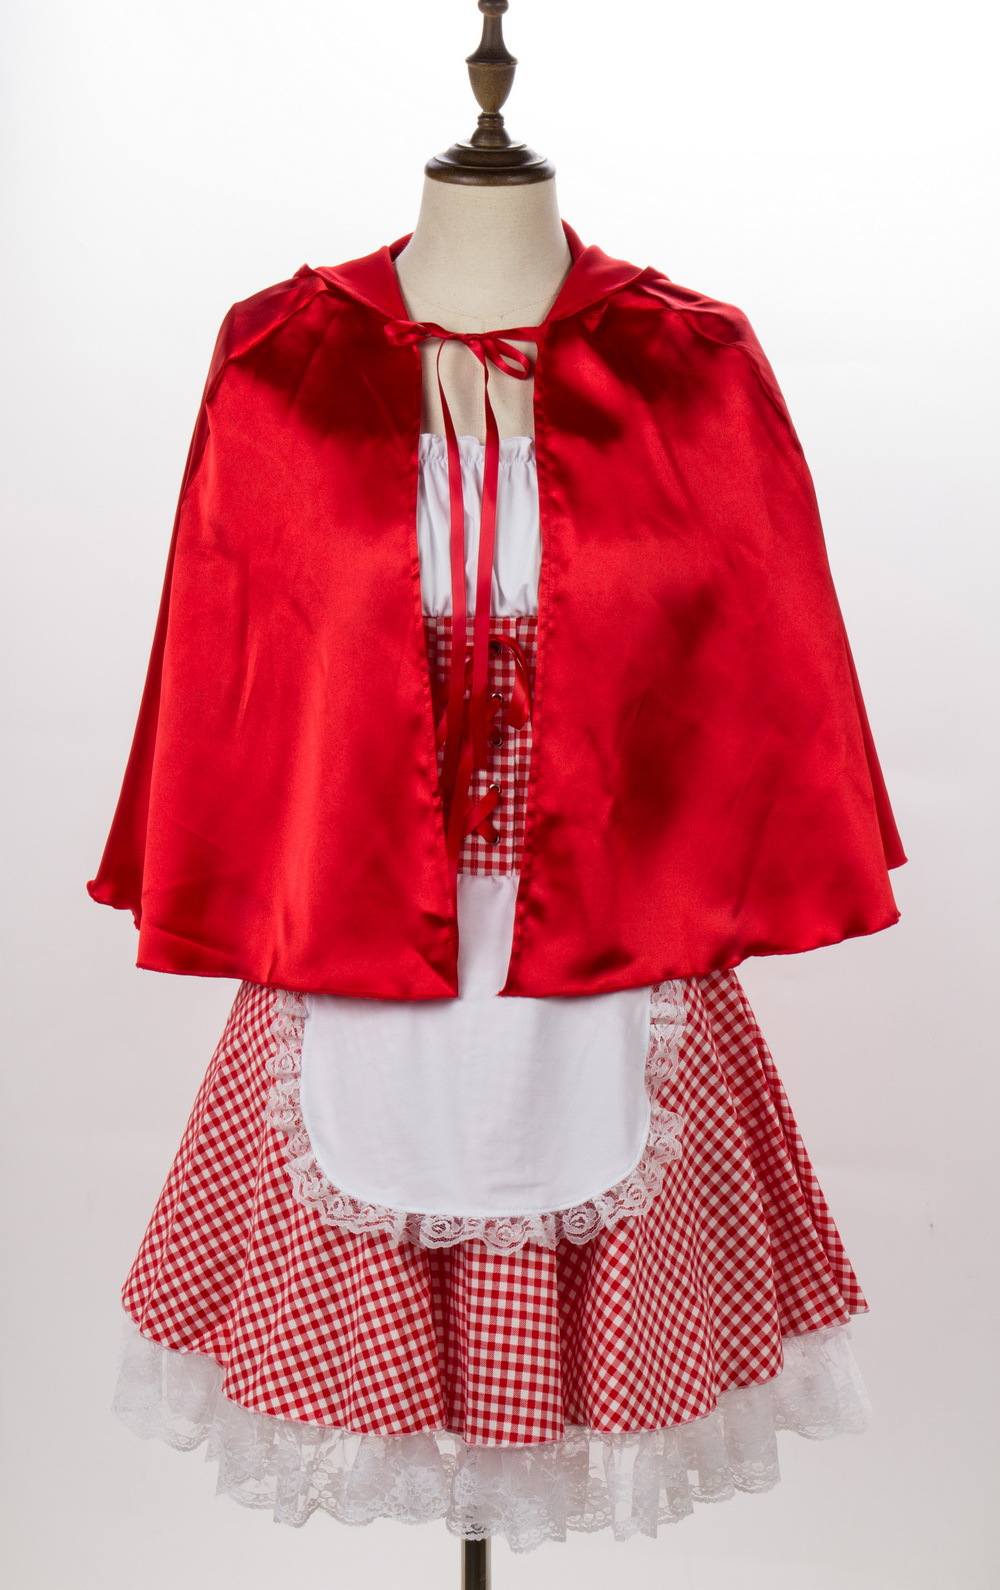 Women Copaly Dress Suit Plaid with Lace Decoration for Halloween Beer Festival  red_M